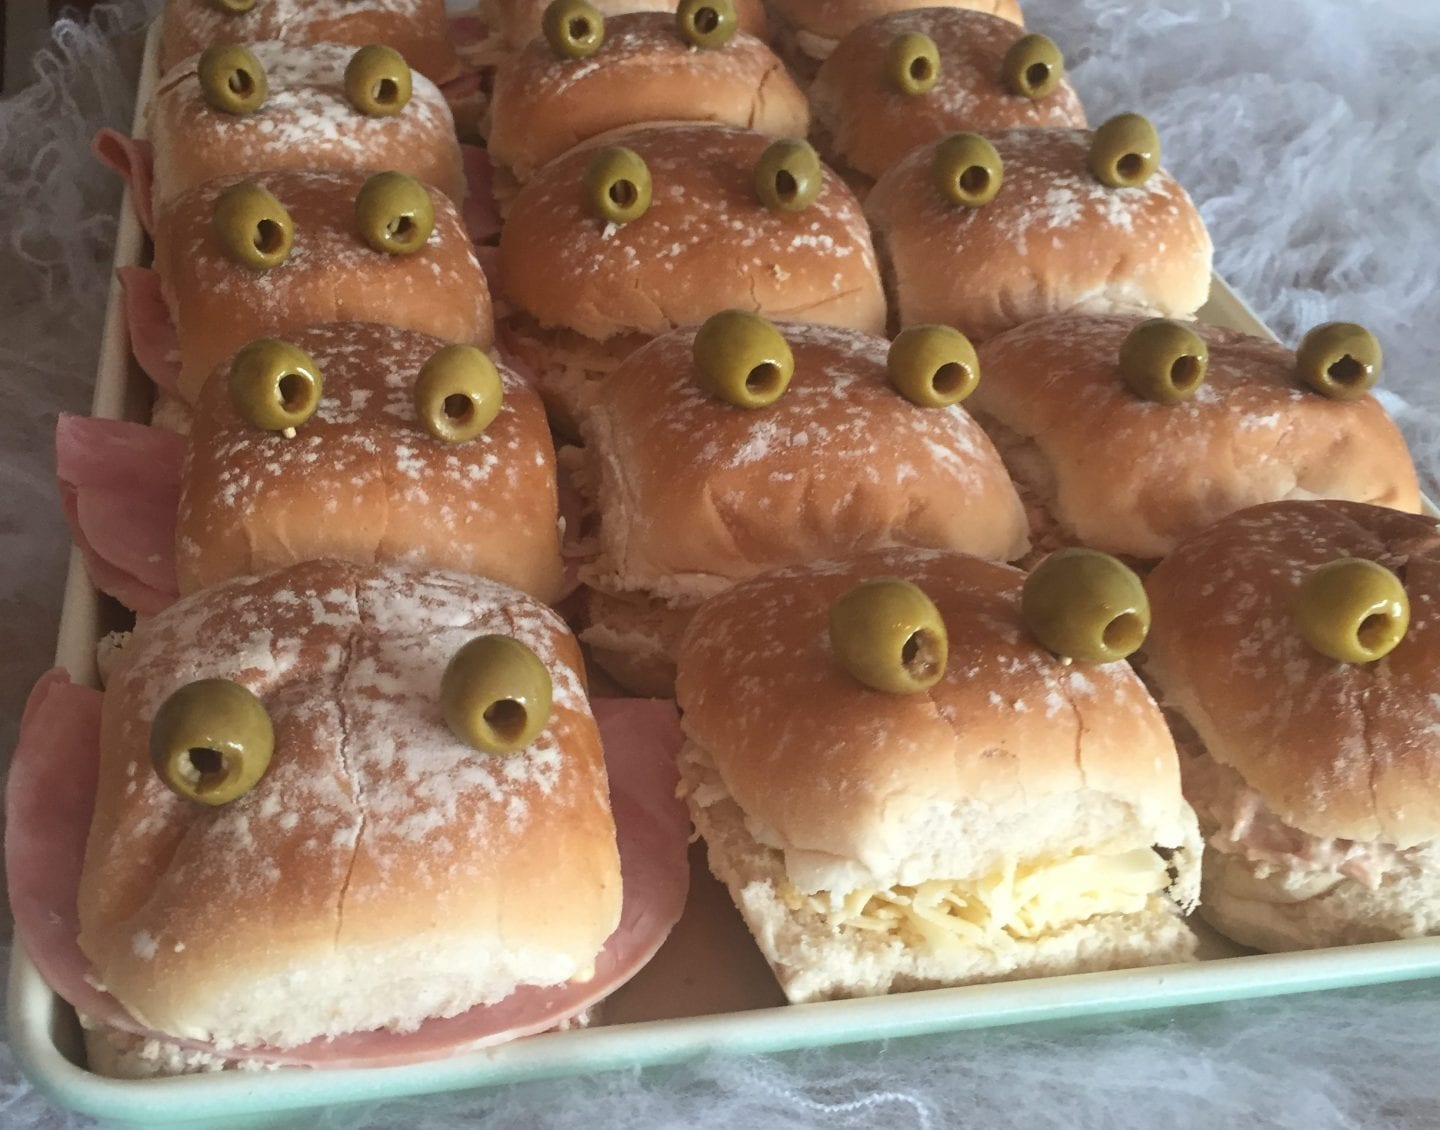 Frog or Monster Rolls- ham and cheese bread rolls with olives for eyes